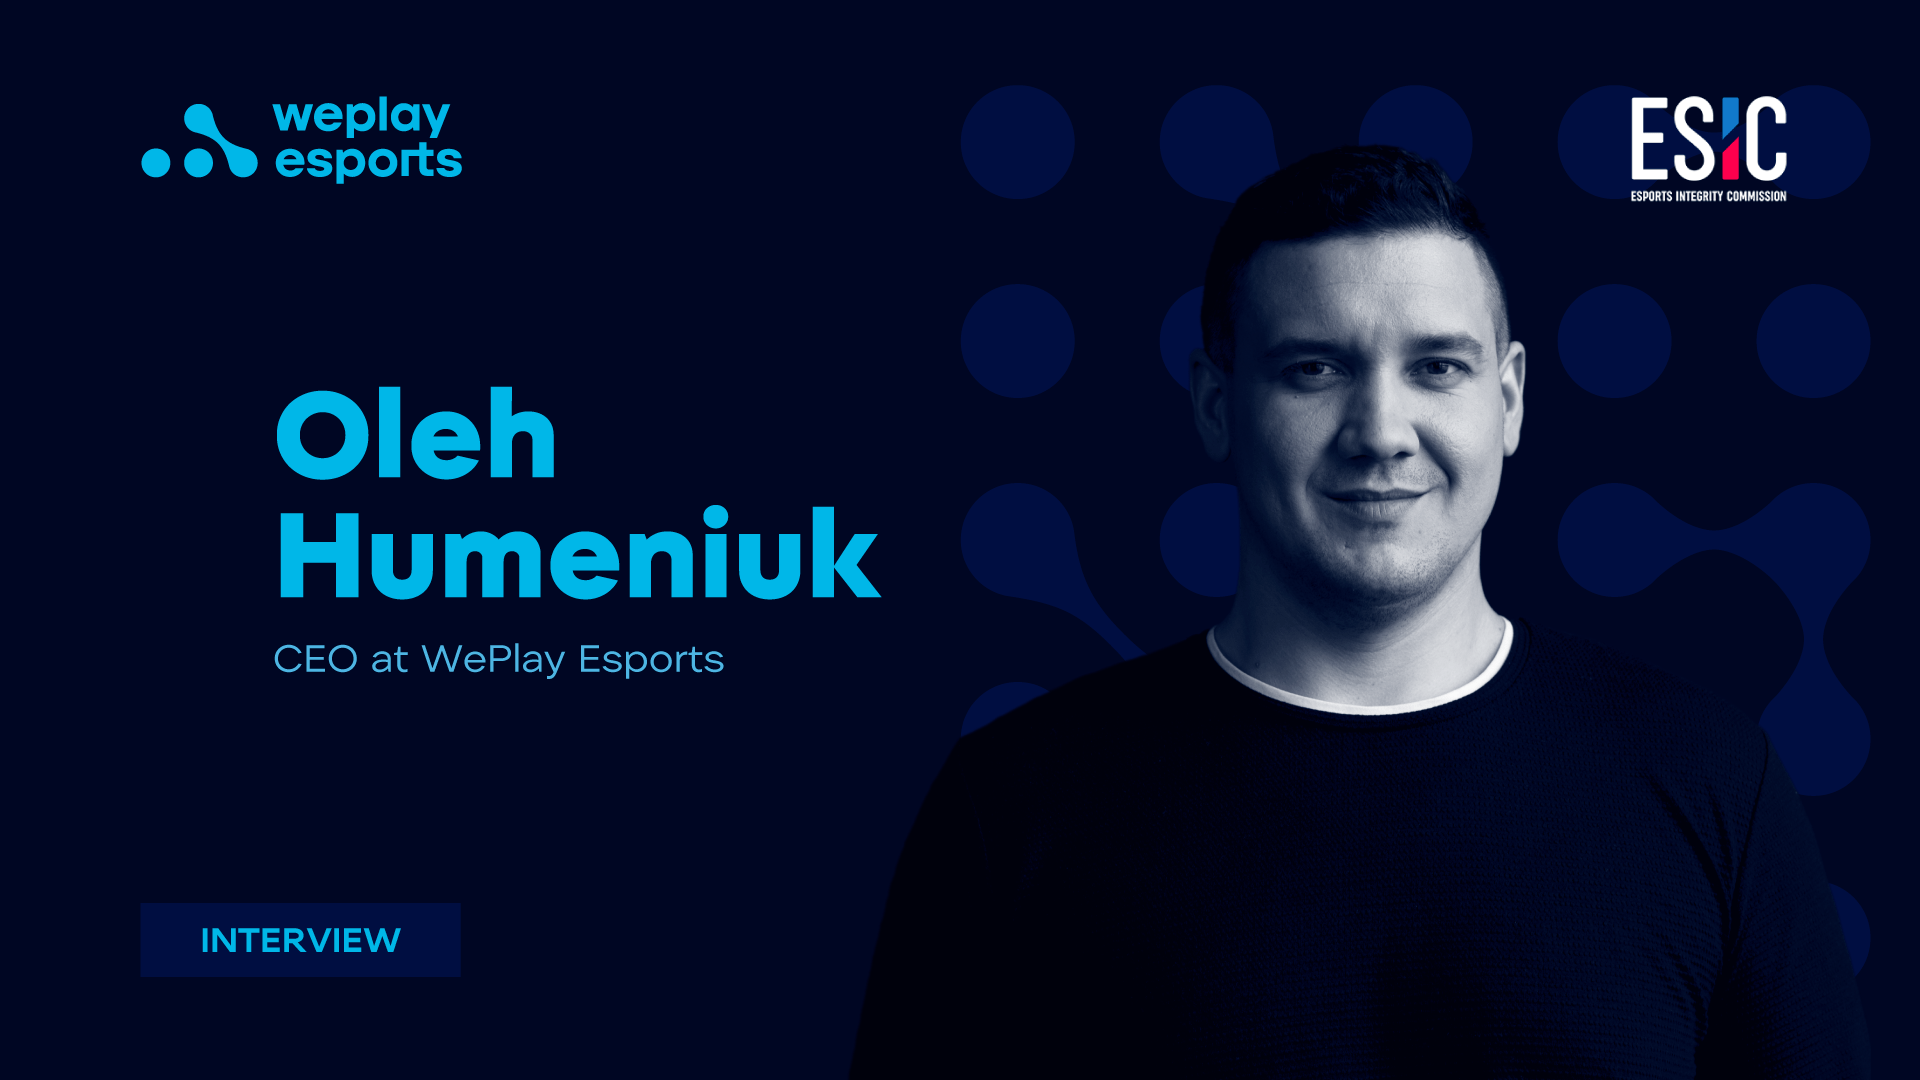 WePlay Esports Becomes a Member of the Esports Integrity Commission